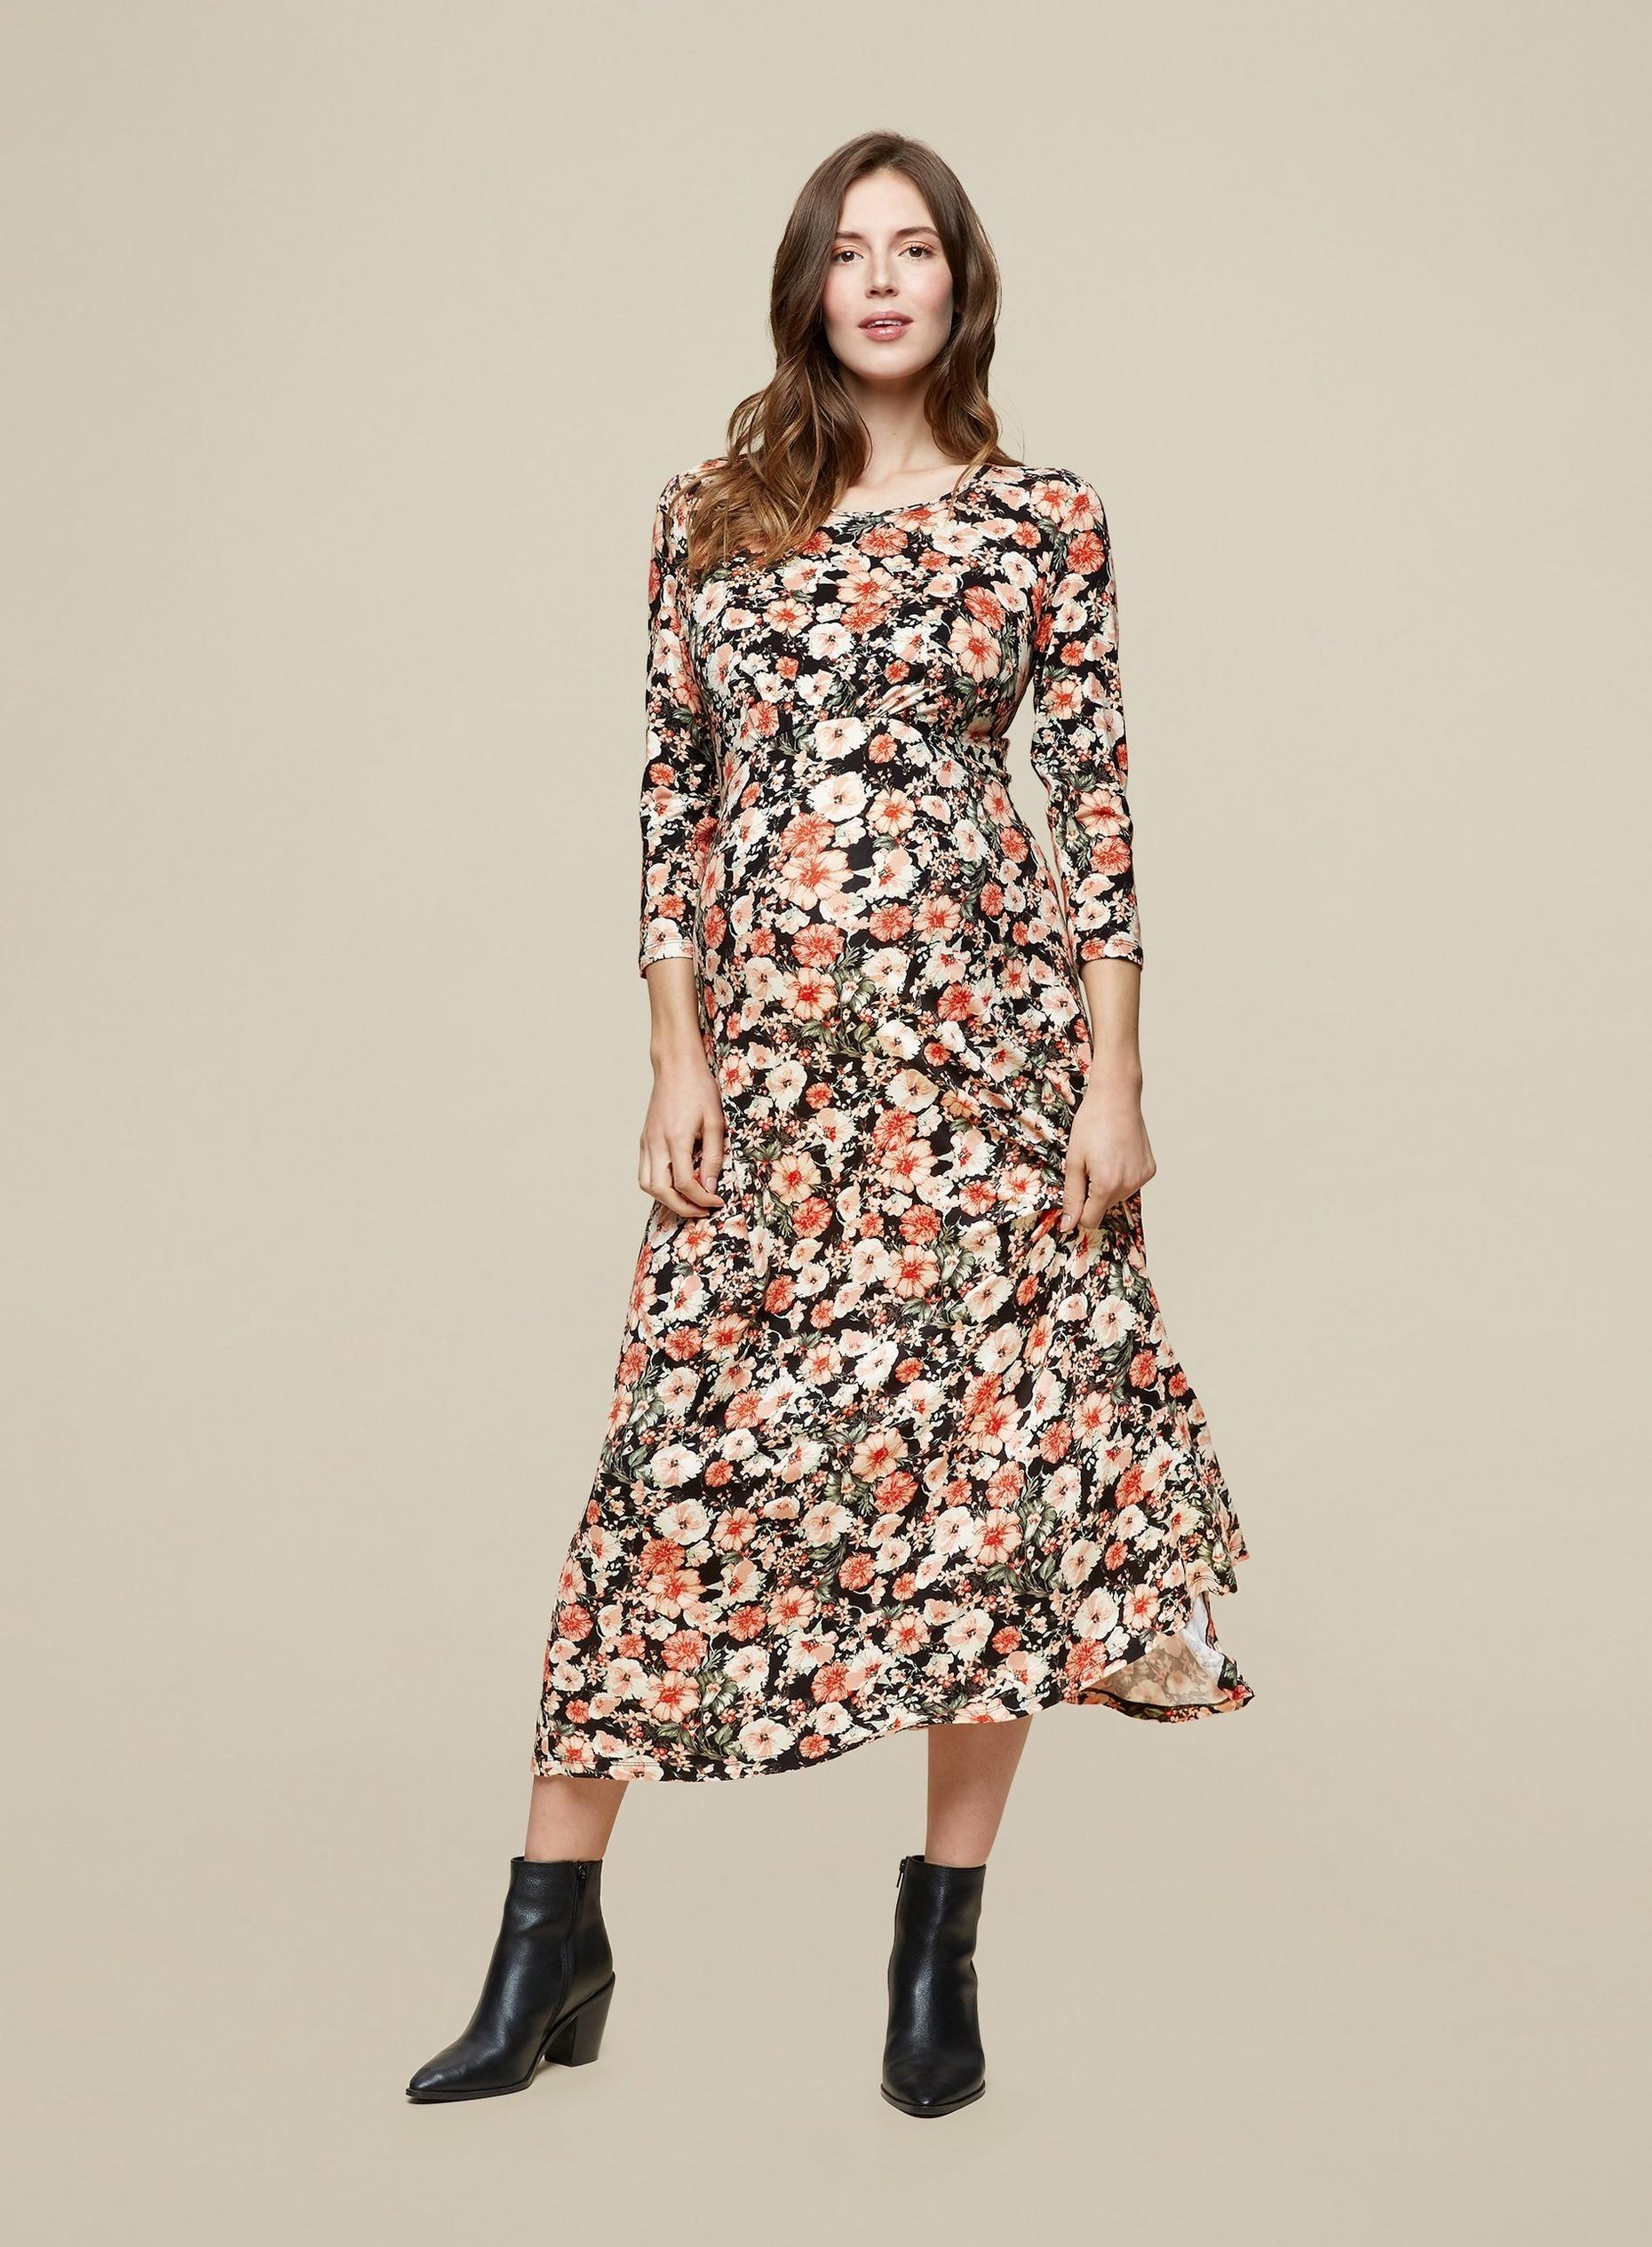 Petite Black Floral 3 Quarter Sleeve Dress